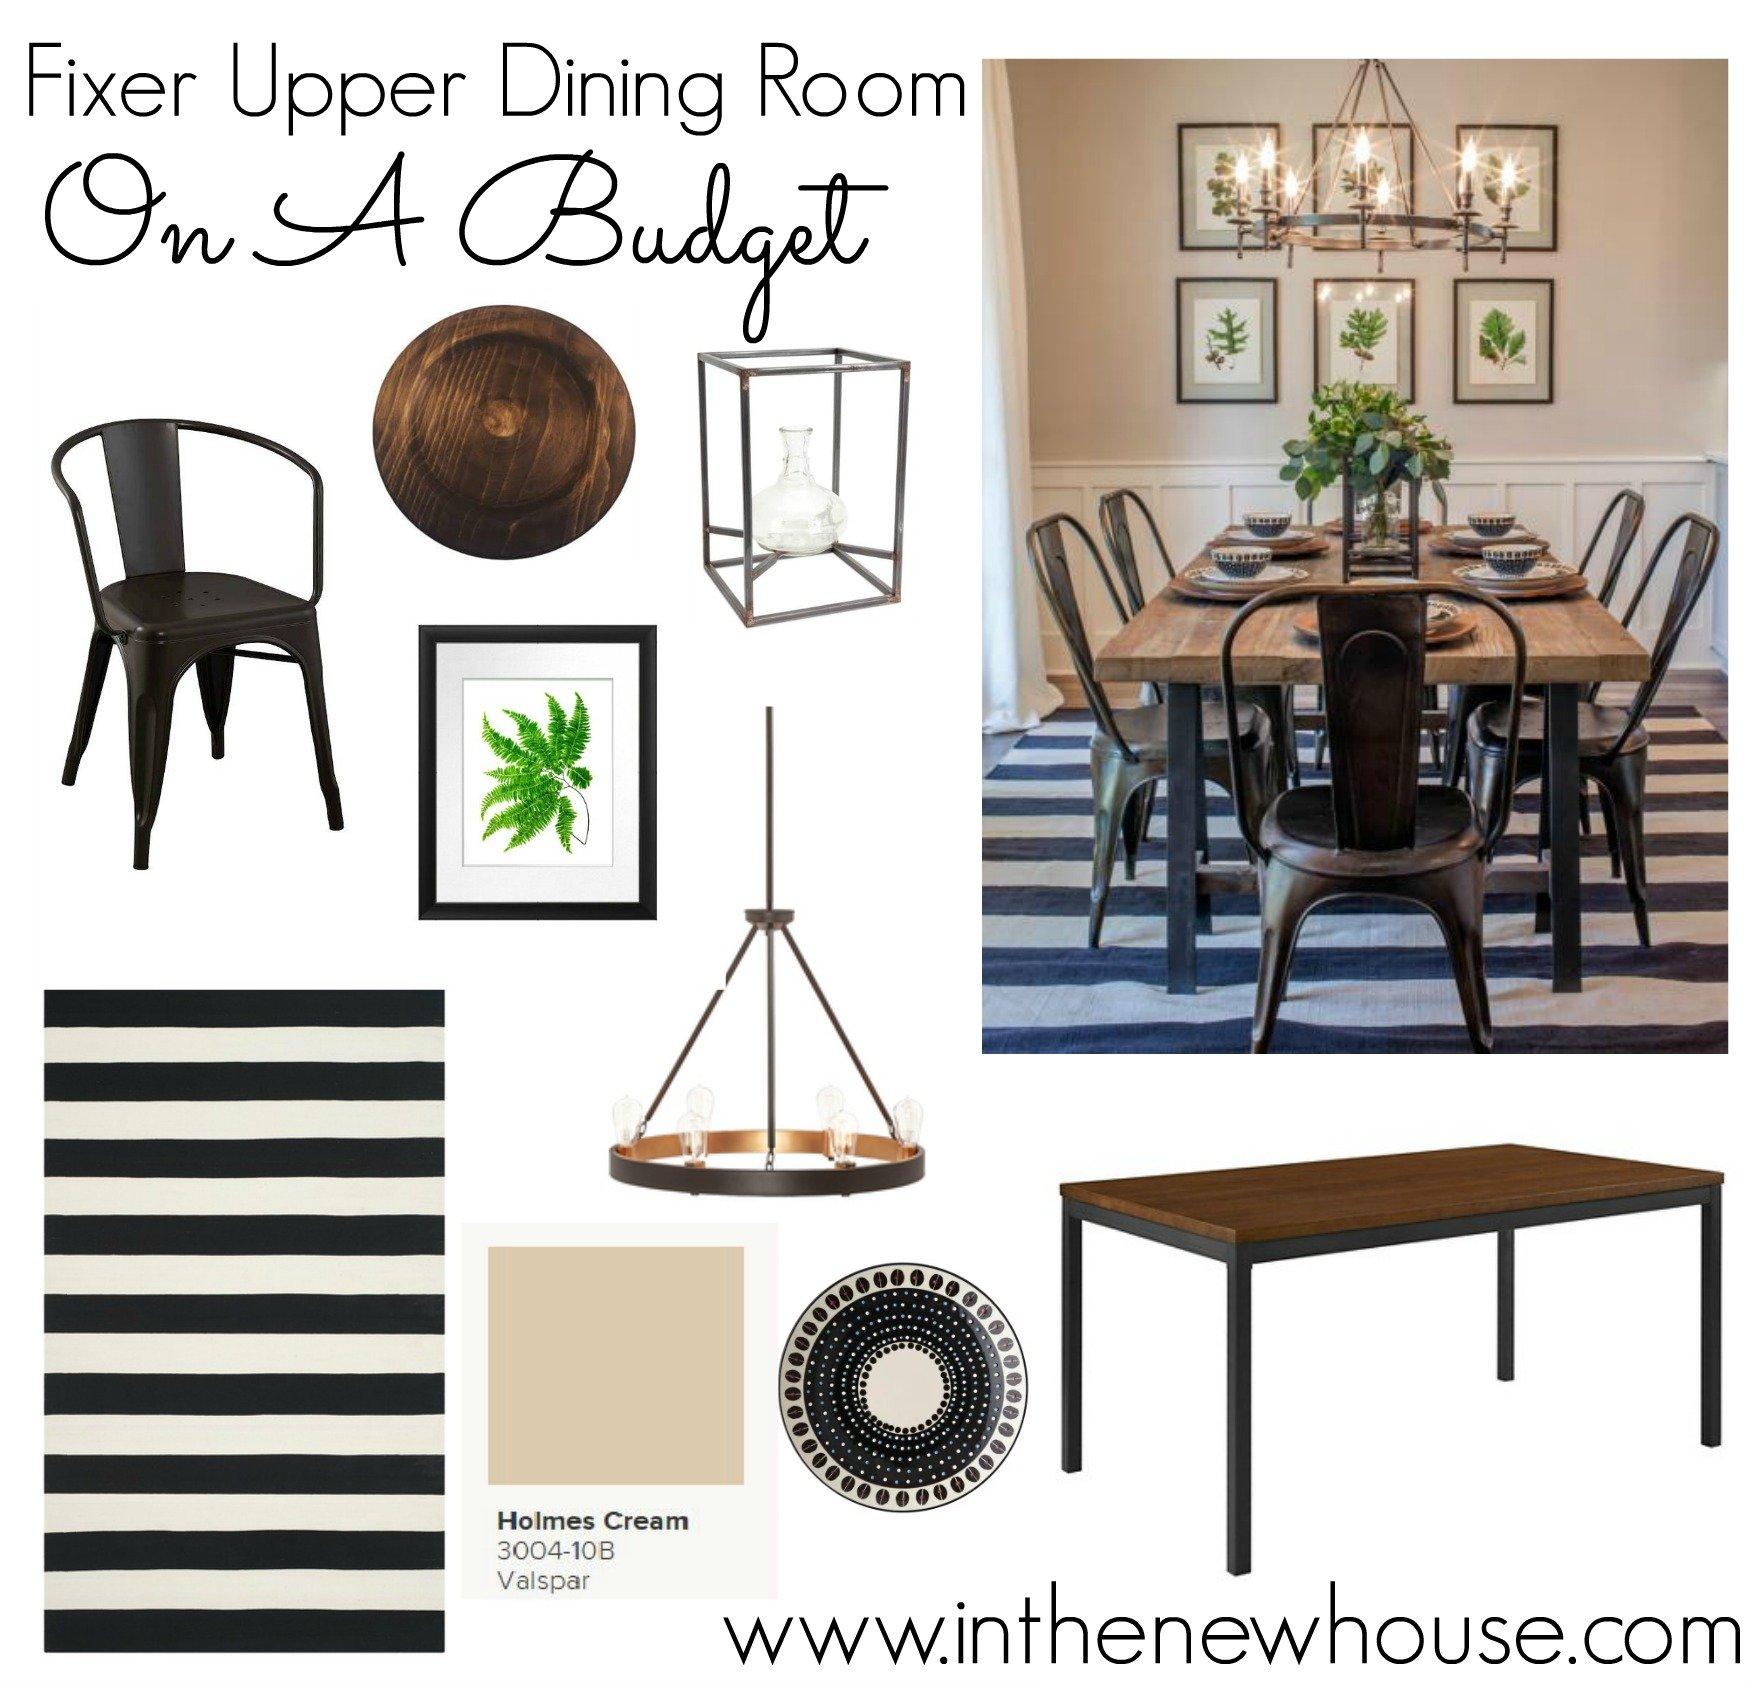 Get The Fixer Upper Look For Half The Price In The New House